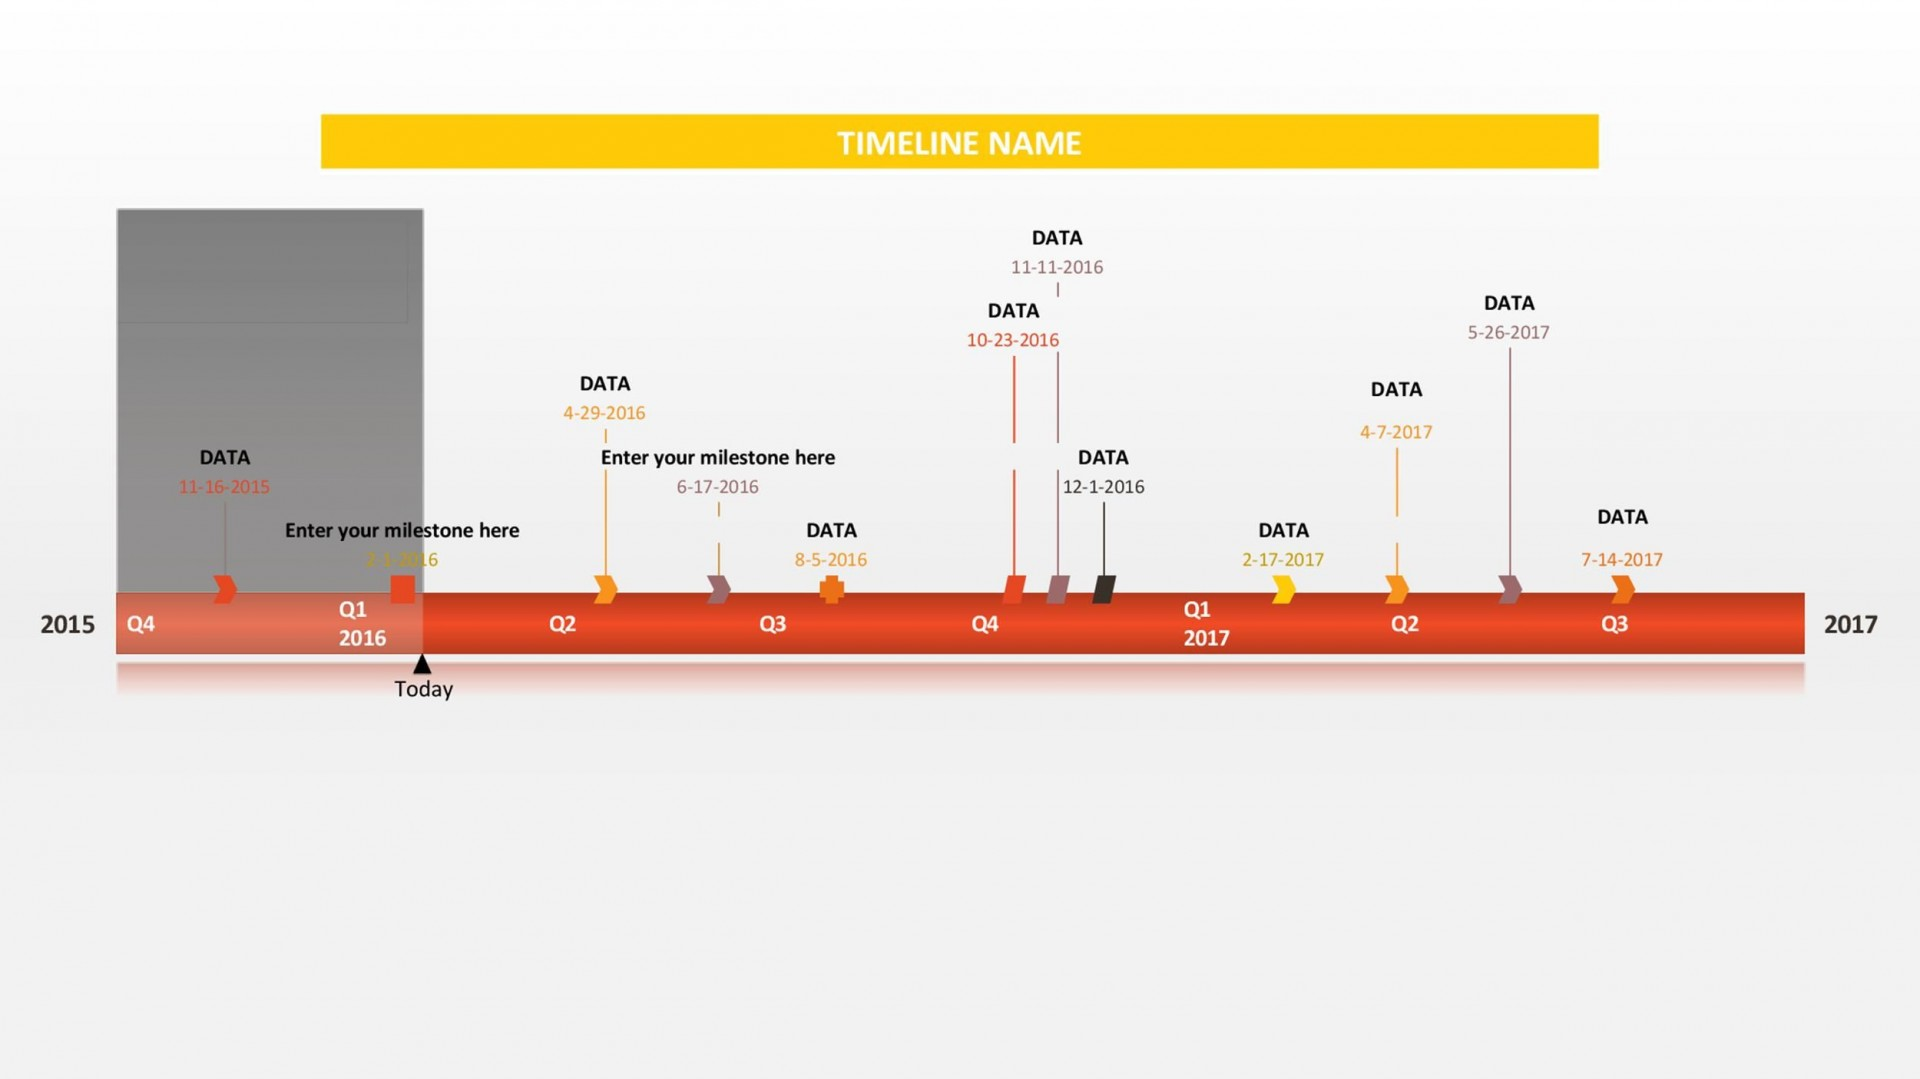 007 Remarkable Timeline Template For Word 2016 Picture 1920